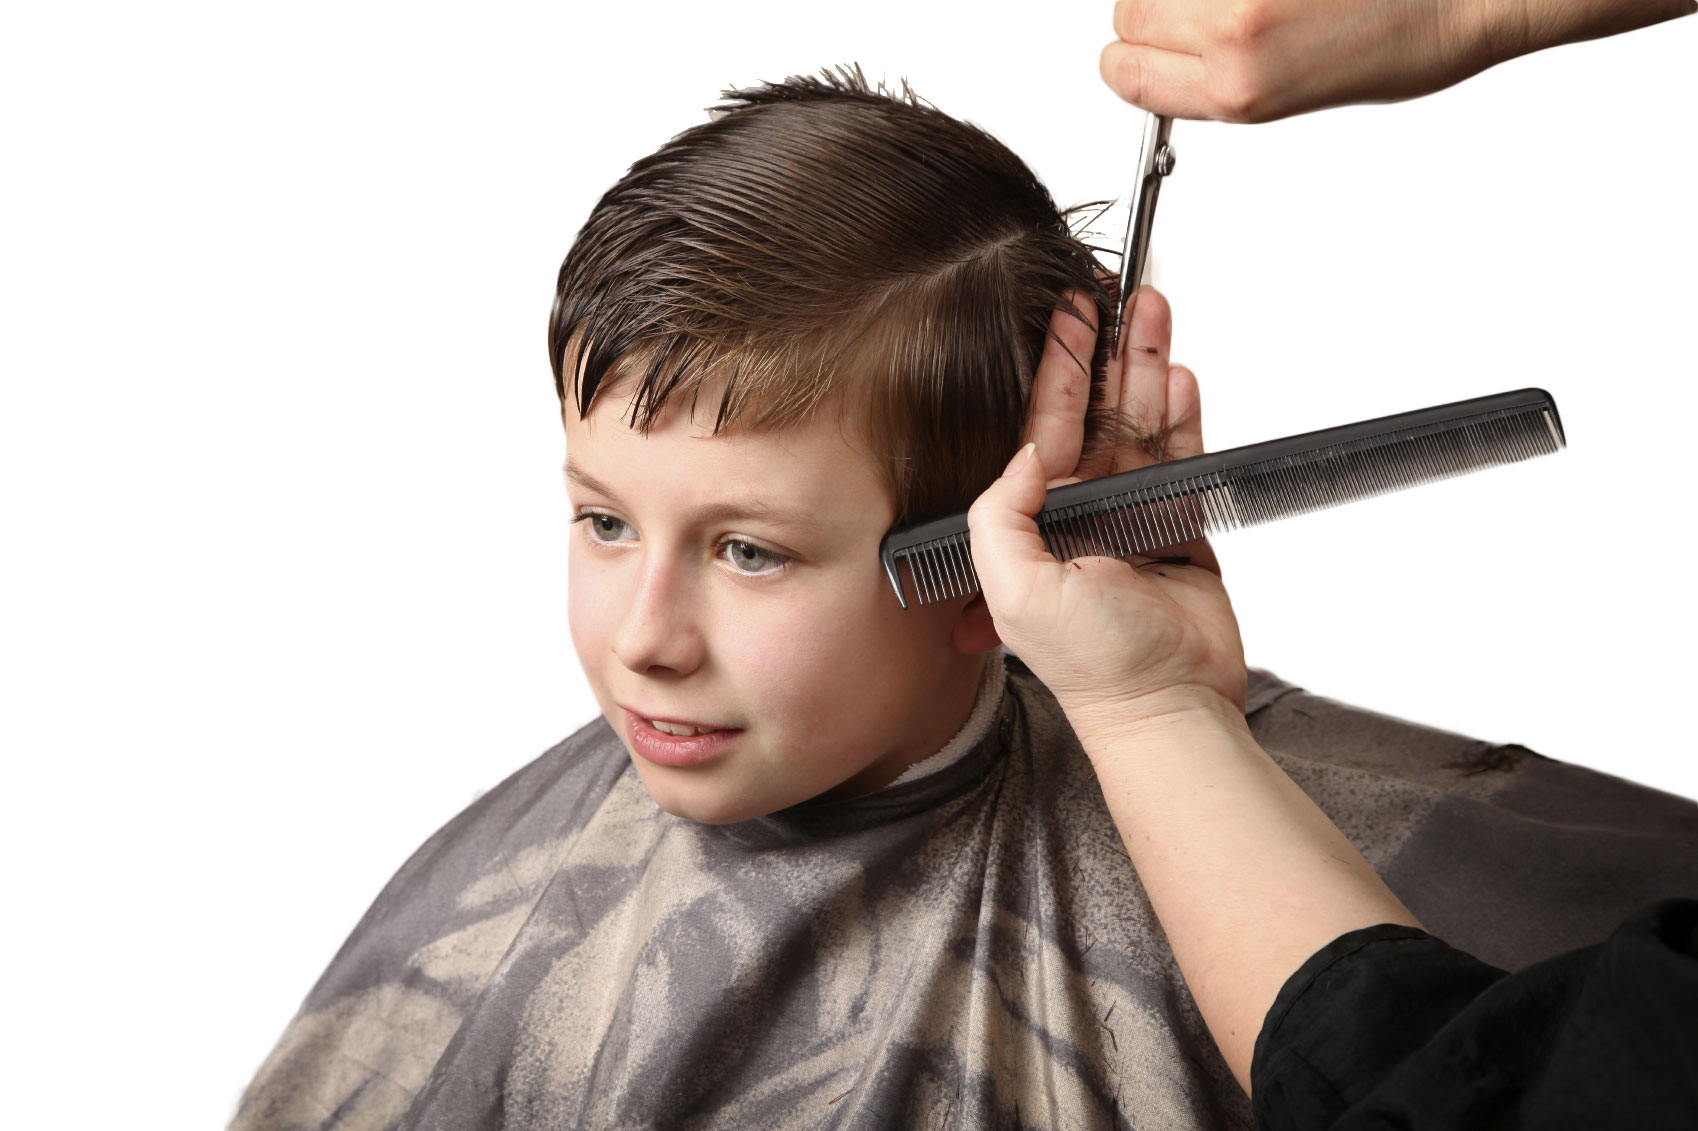 Style Of Hair Cutting : Hair Cut & Style For Him Mens Hair Cuts & Salon Friendswood Texas